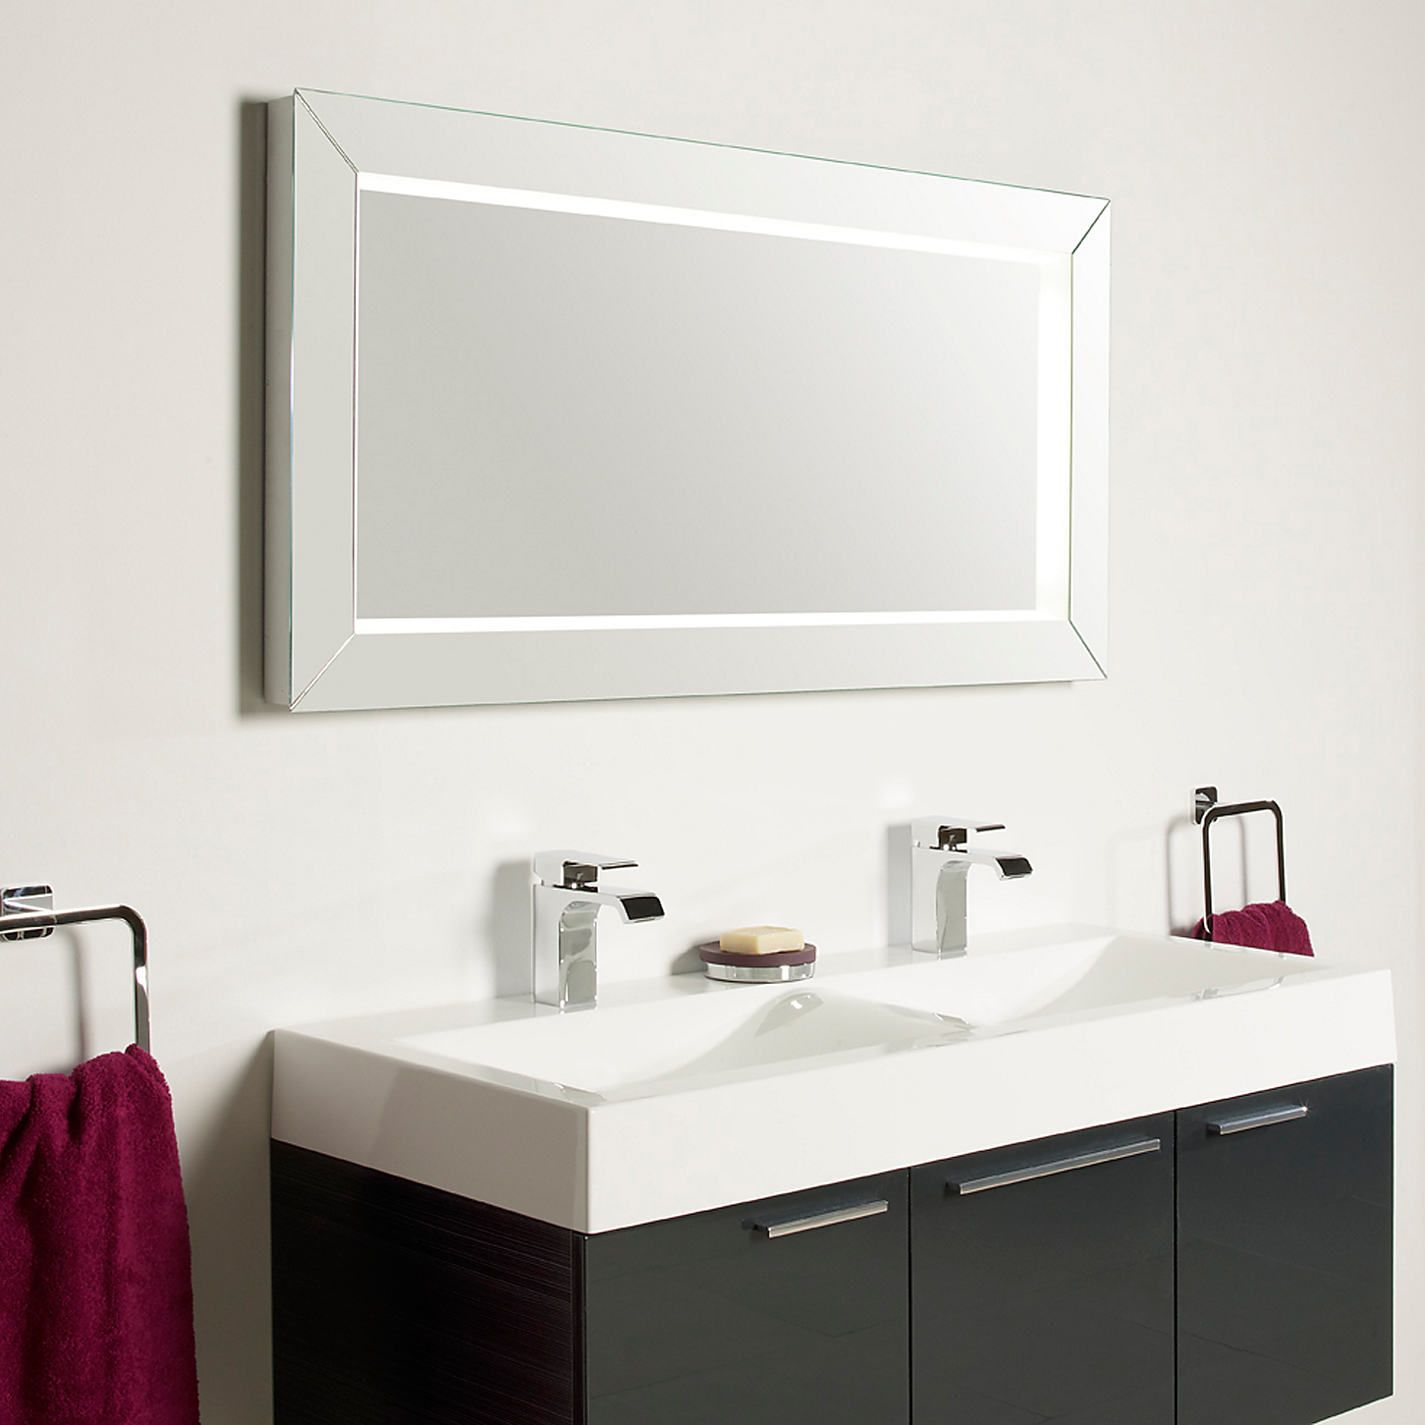 Bathroom Rectangular Bathroom Mirror With Wood Framed Over Bathroom Vanity And Completed With Bathroom Mirror Lights Minimalist Bathroom Design Modern Faucet [ 1425 x 1425 Pixel ]